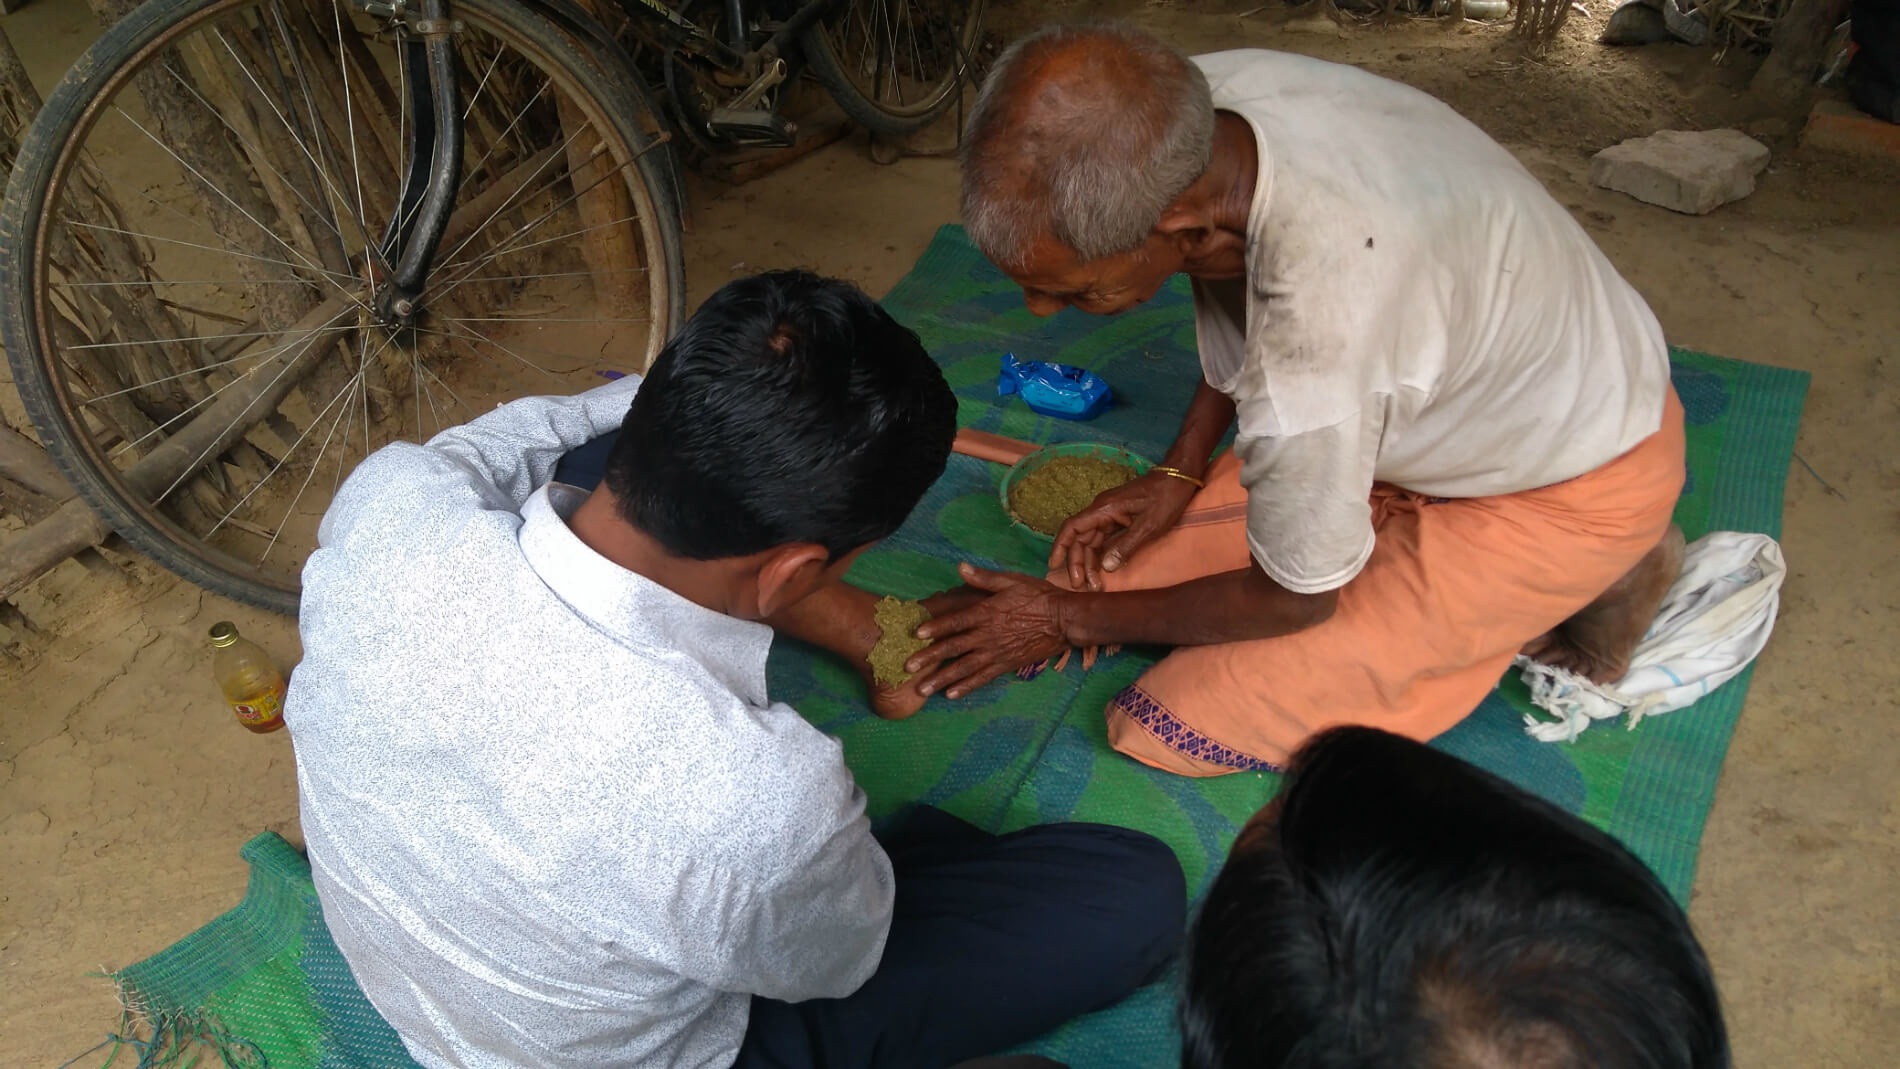 The indigenous doctors and healers of Chhattisgarh